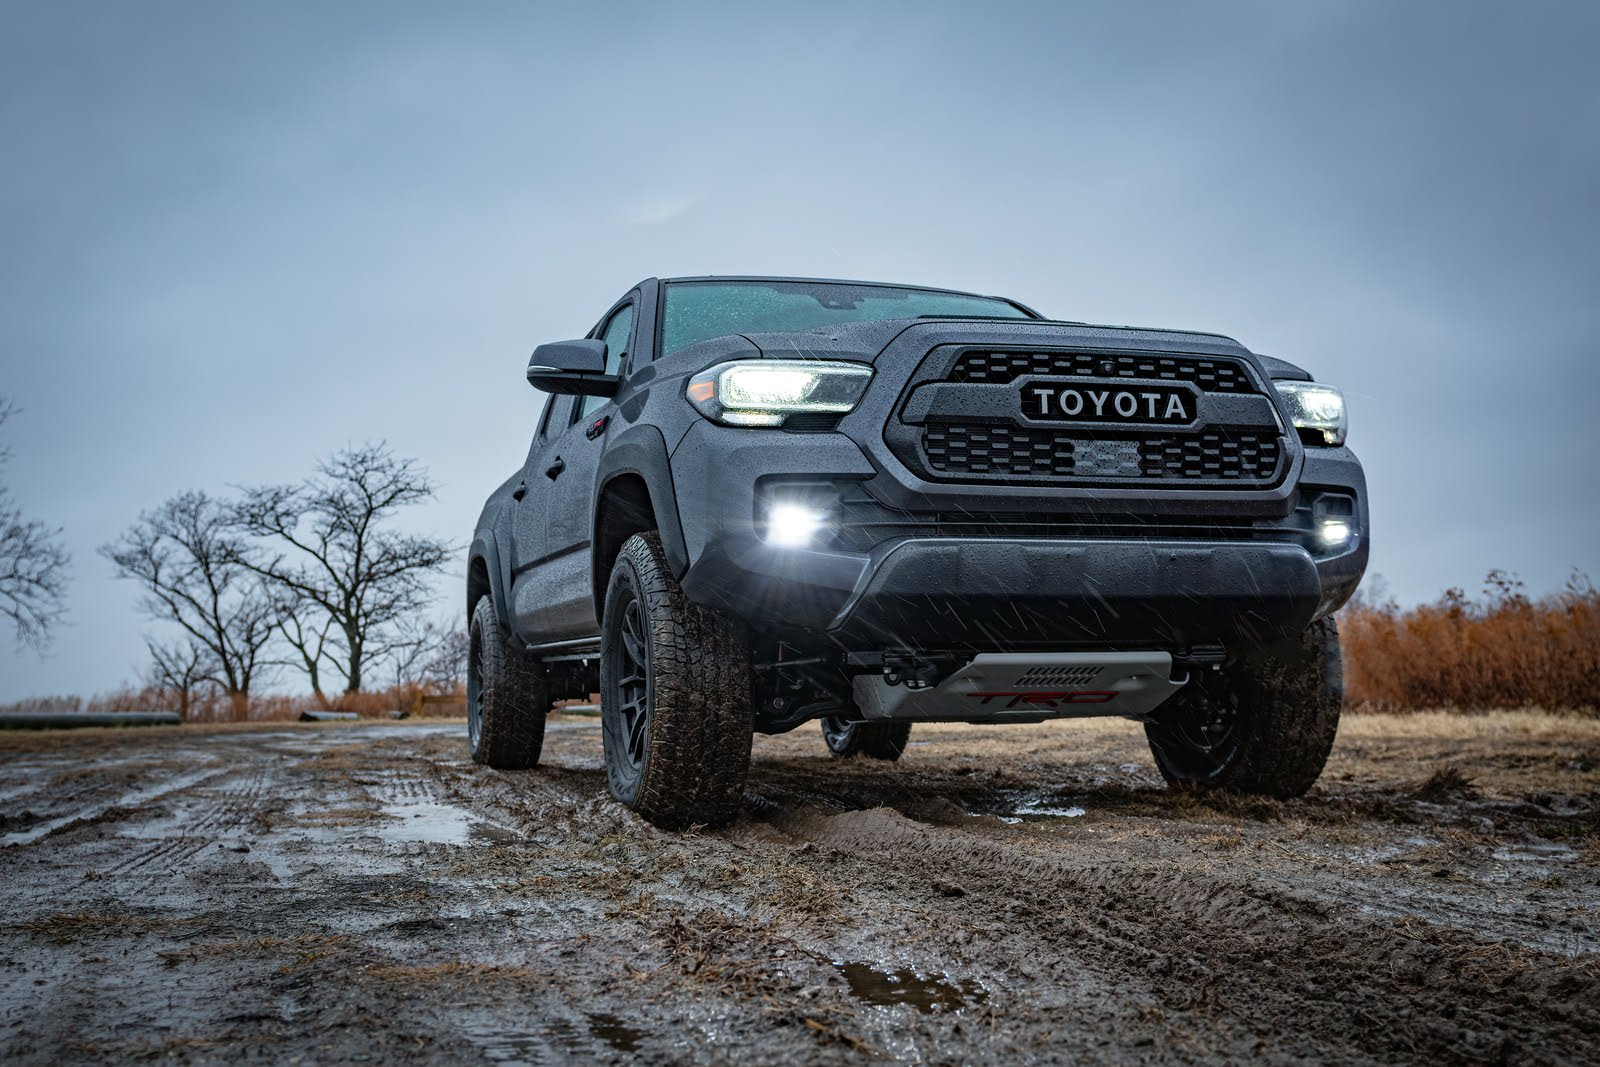 Used Toyota Tacoma For Sale Right Now Cargurus